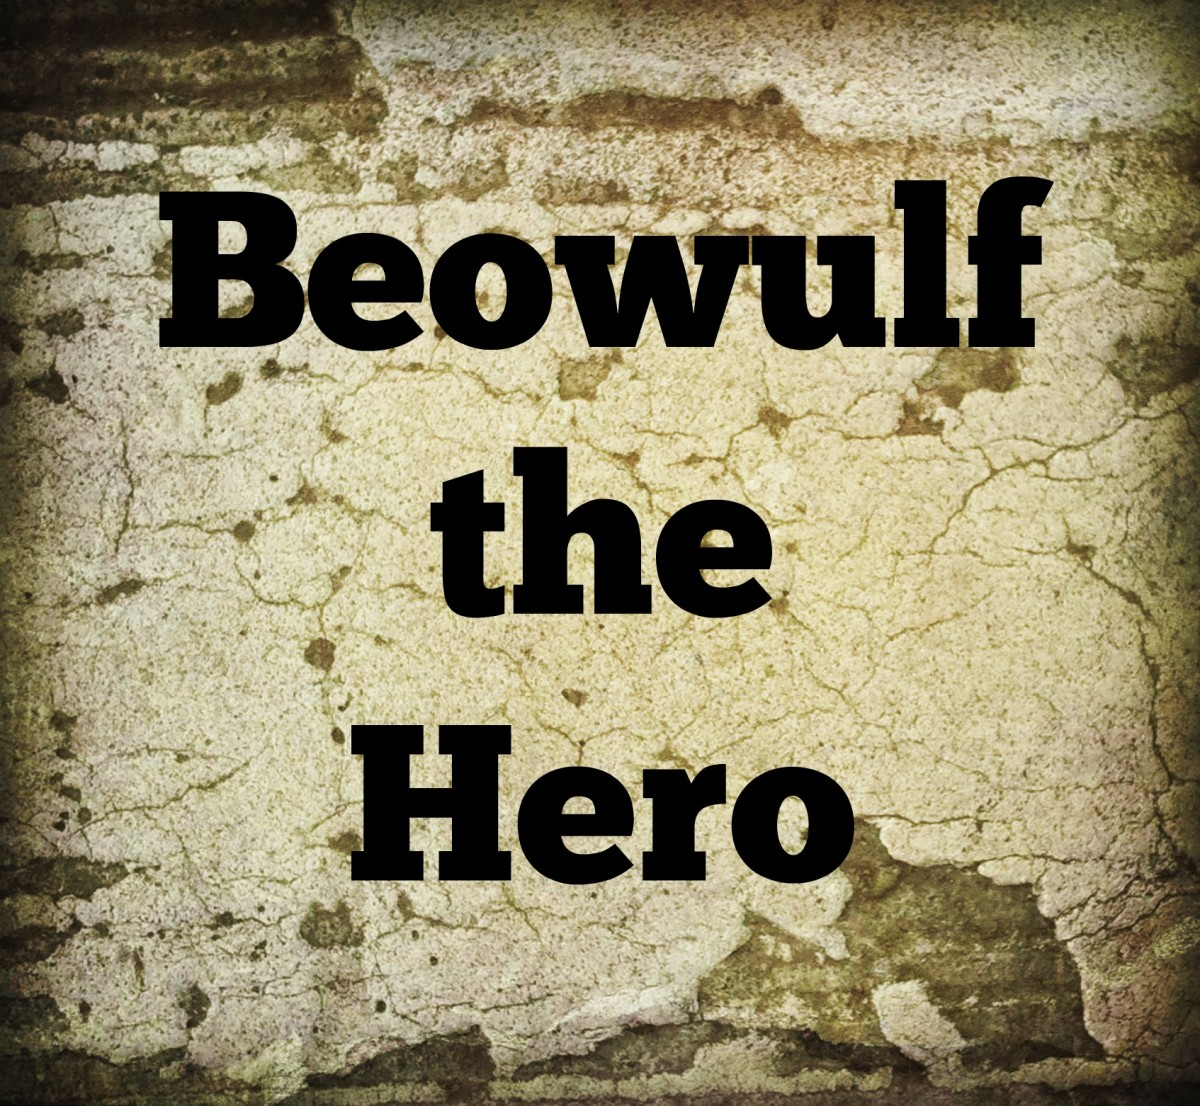 beowulf-as-the-archetypal-hero-examples-of-beowulfs-heroic-journey